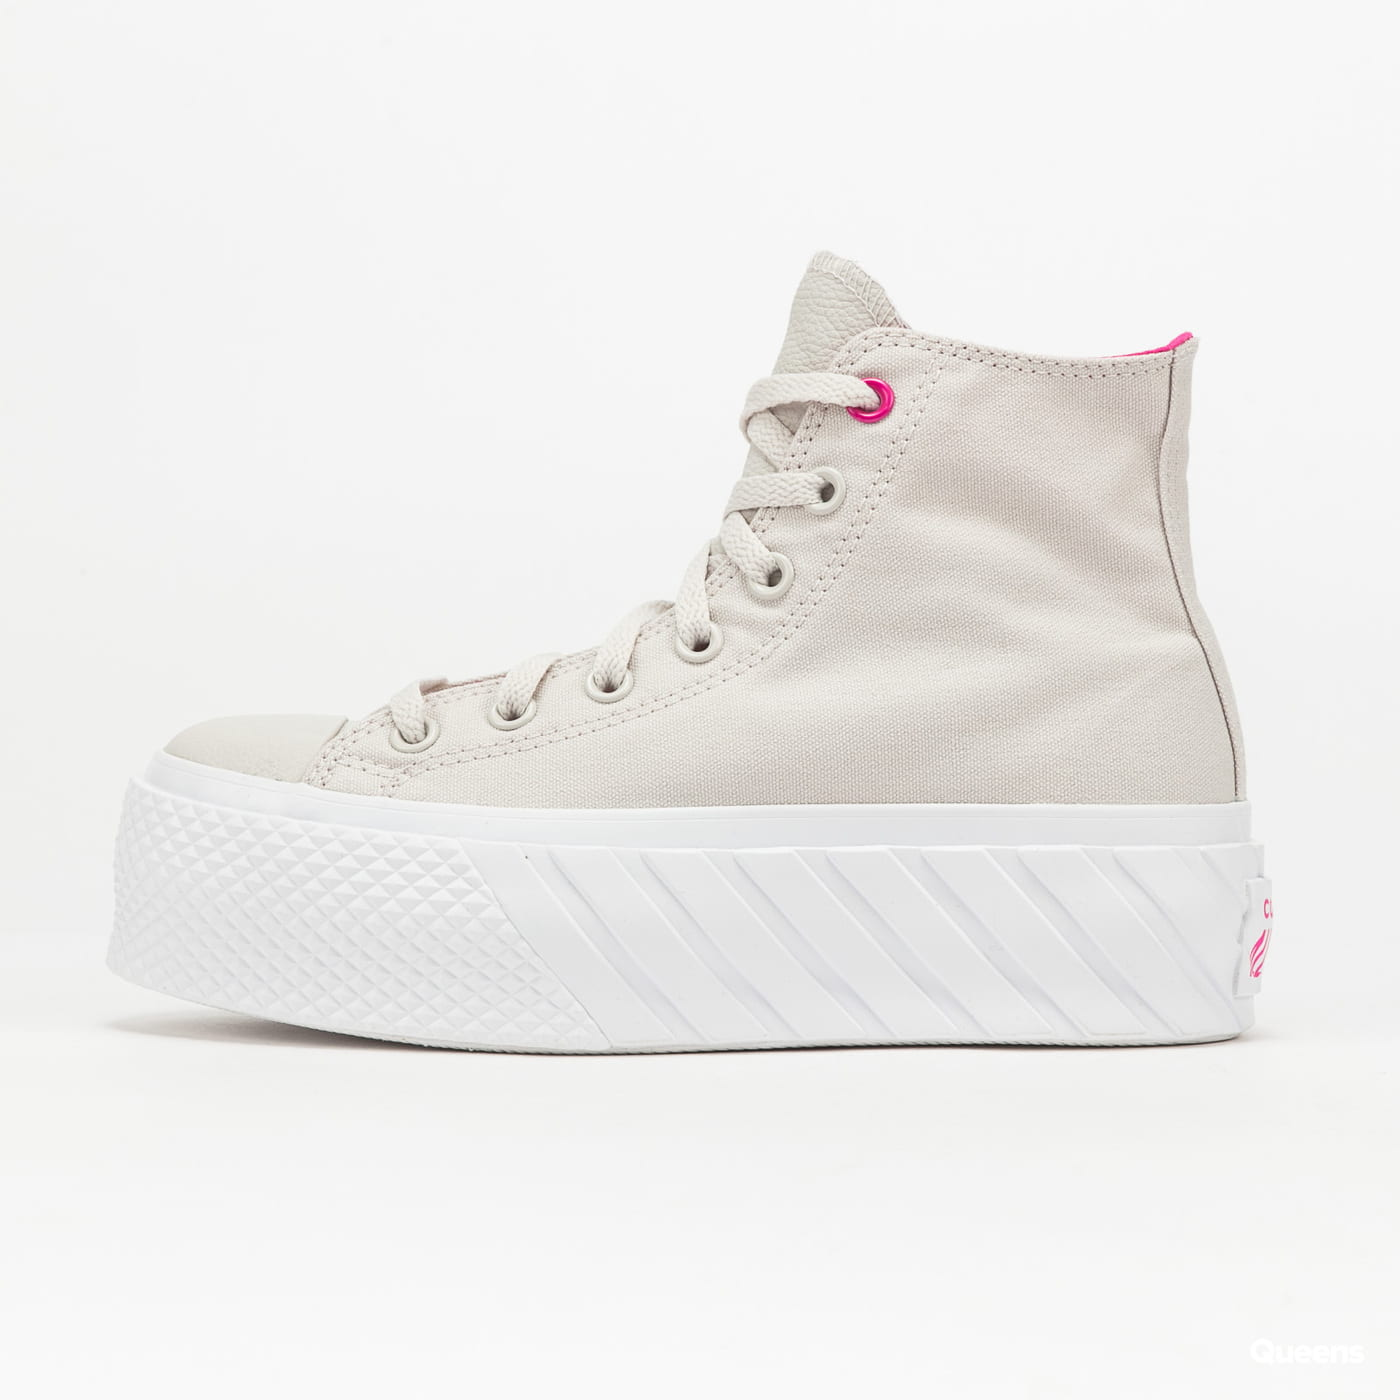 Converse Chuck Taylor All Star Lift 2X Hi pale putty / prime pink / white